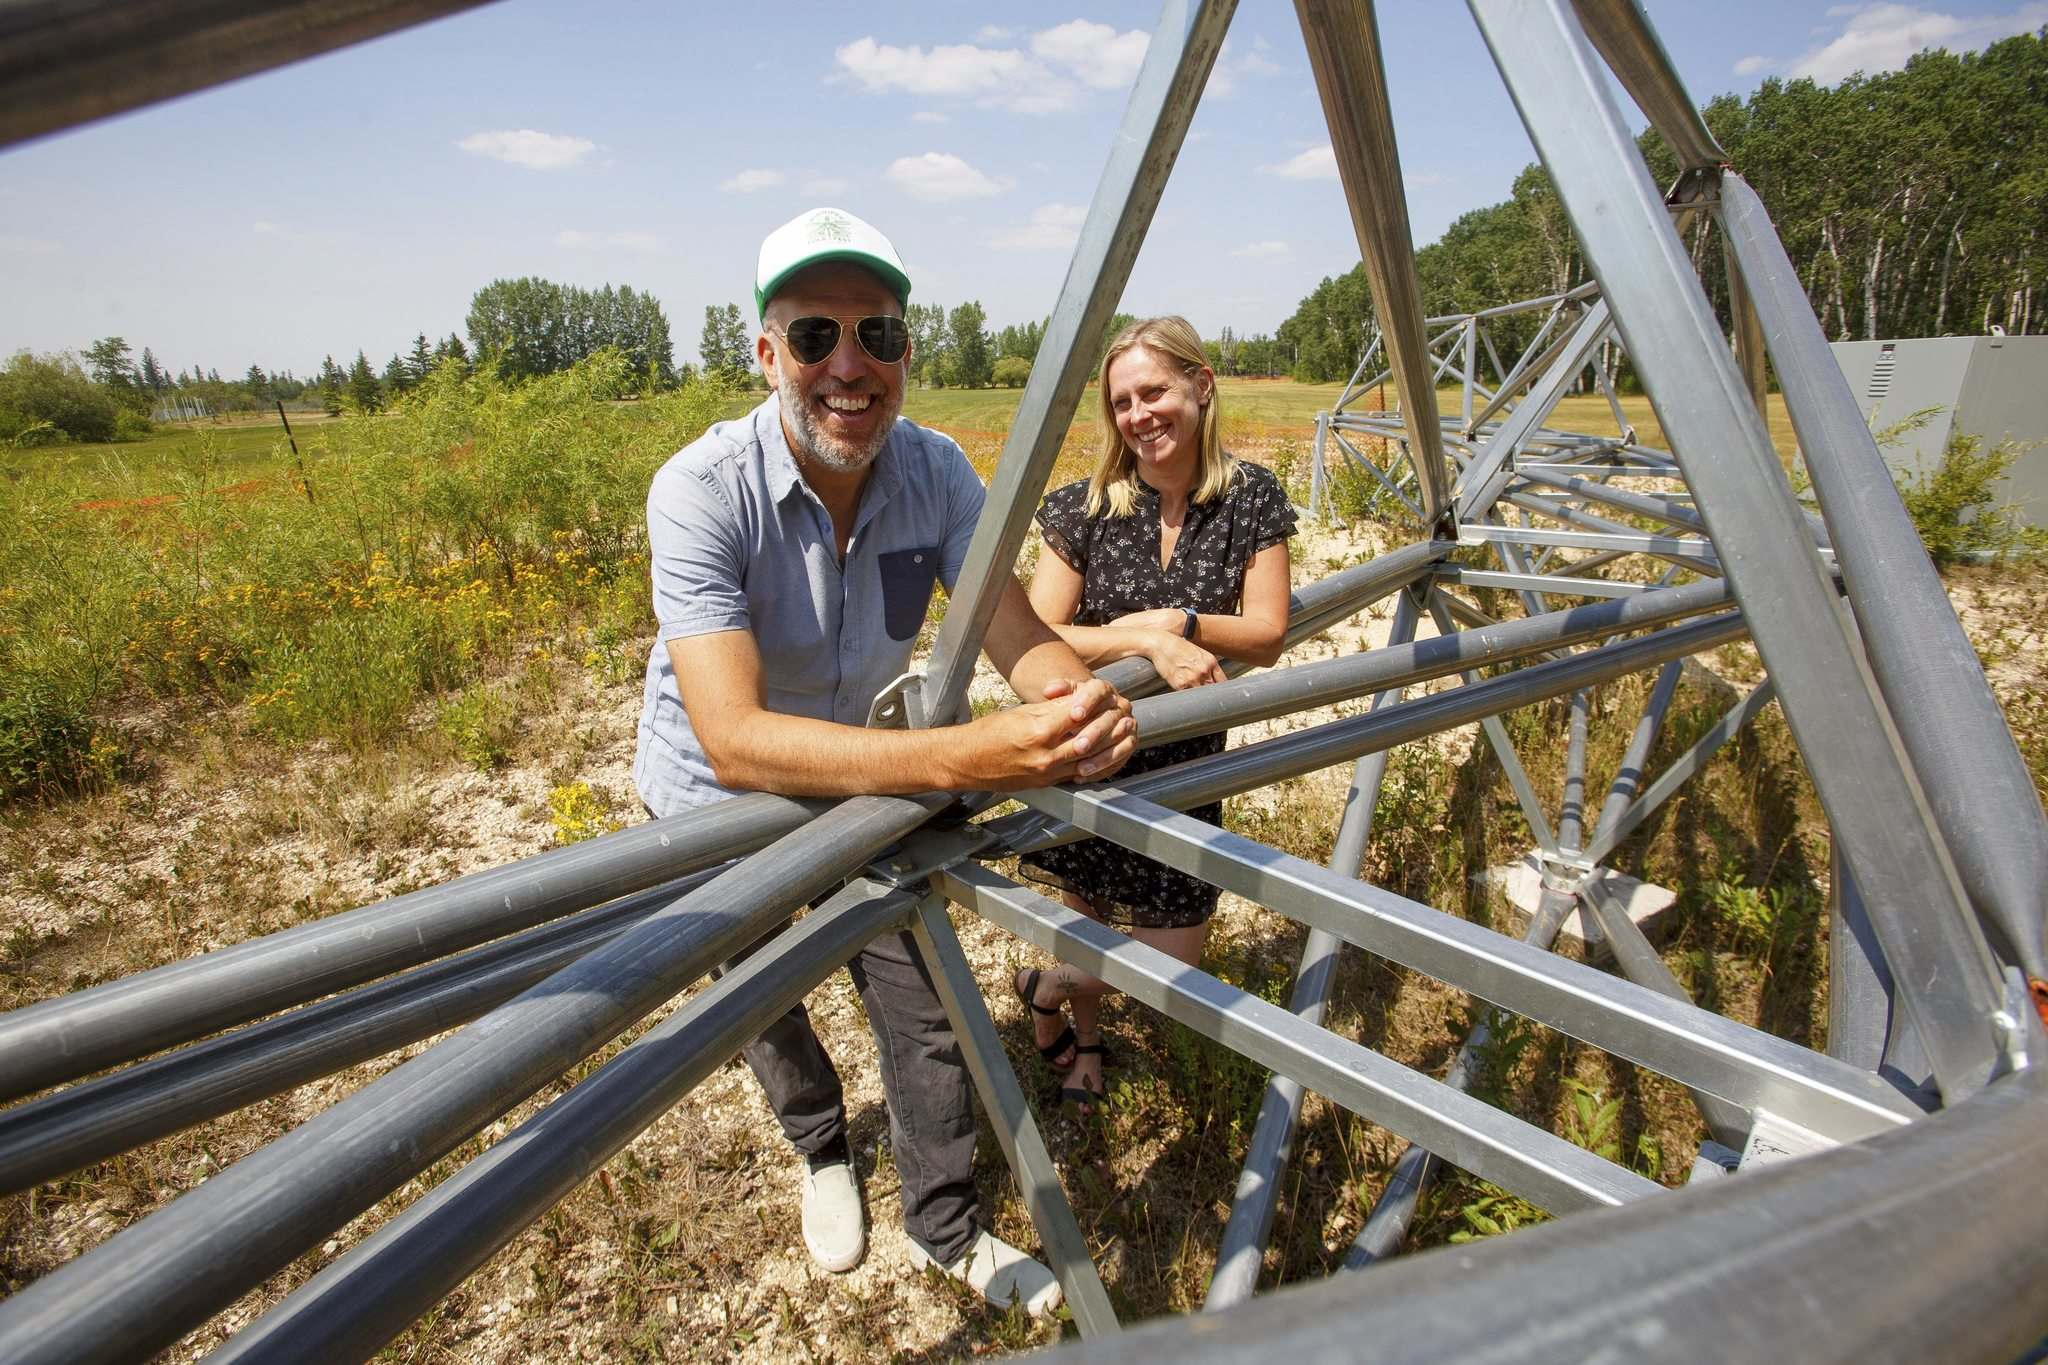 With vaccine uptake rising,Frayer and Skromeda are optimistic that by July 2022, Birds Hill will be rocking once more. (Mike Deal / Winnipeg Free Press)